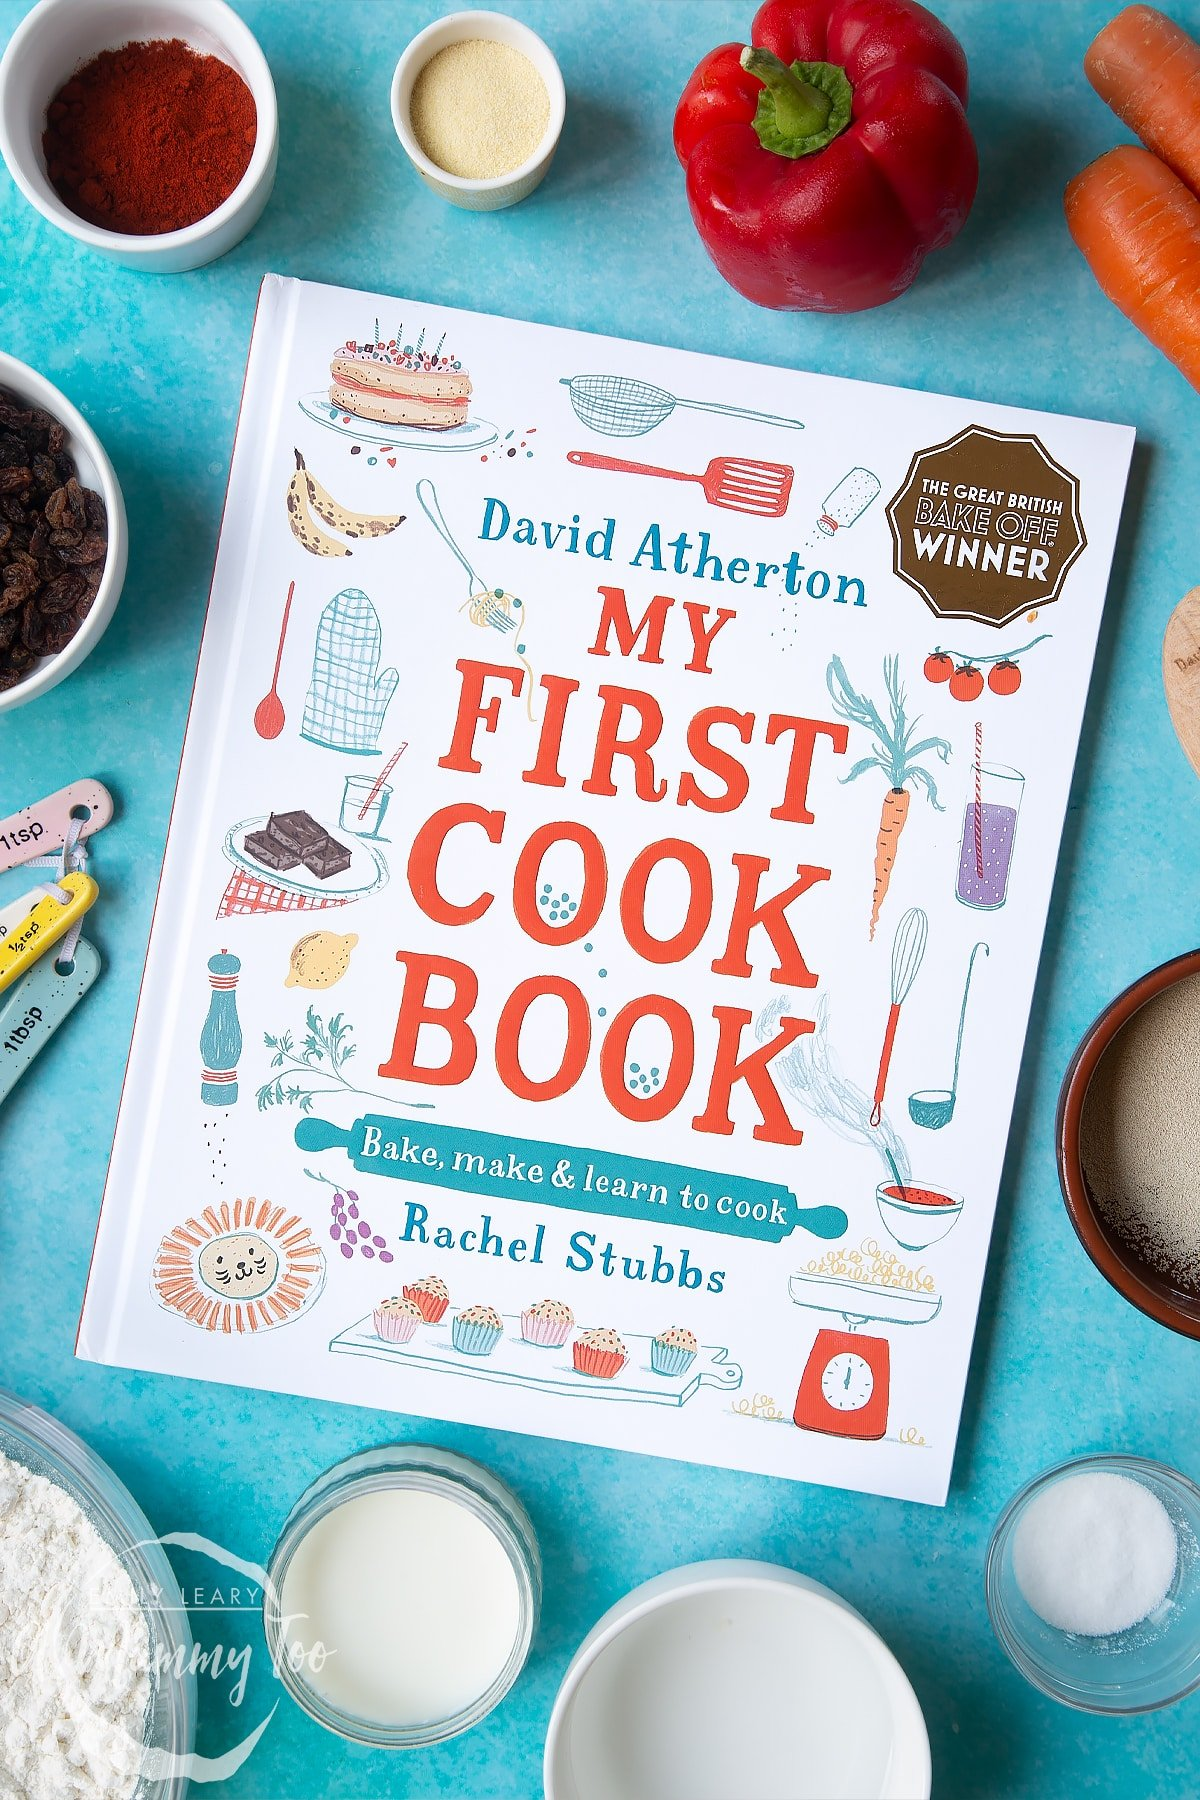 David Atherton's My First Cook Book on a blue background surrounded by ingredients to make bread snakes.